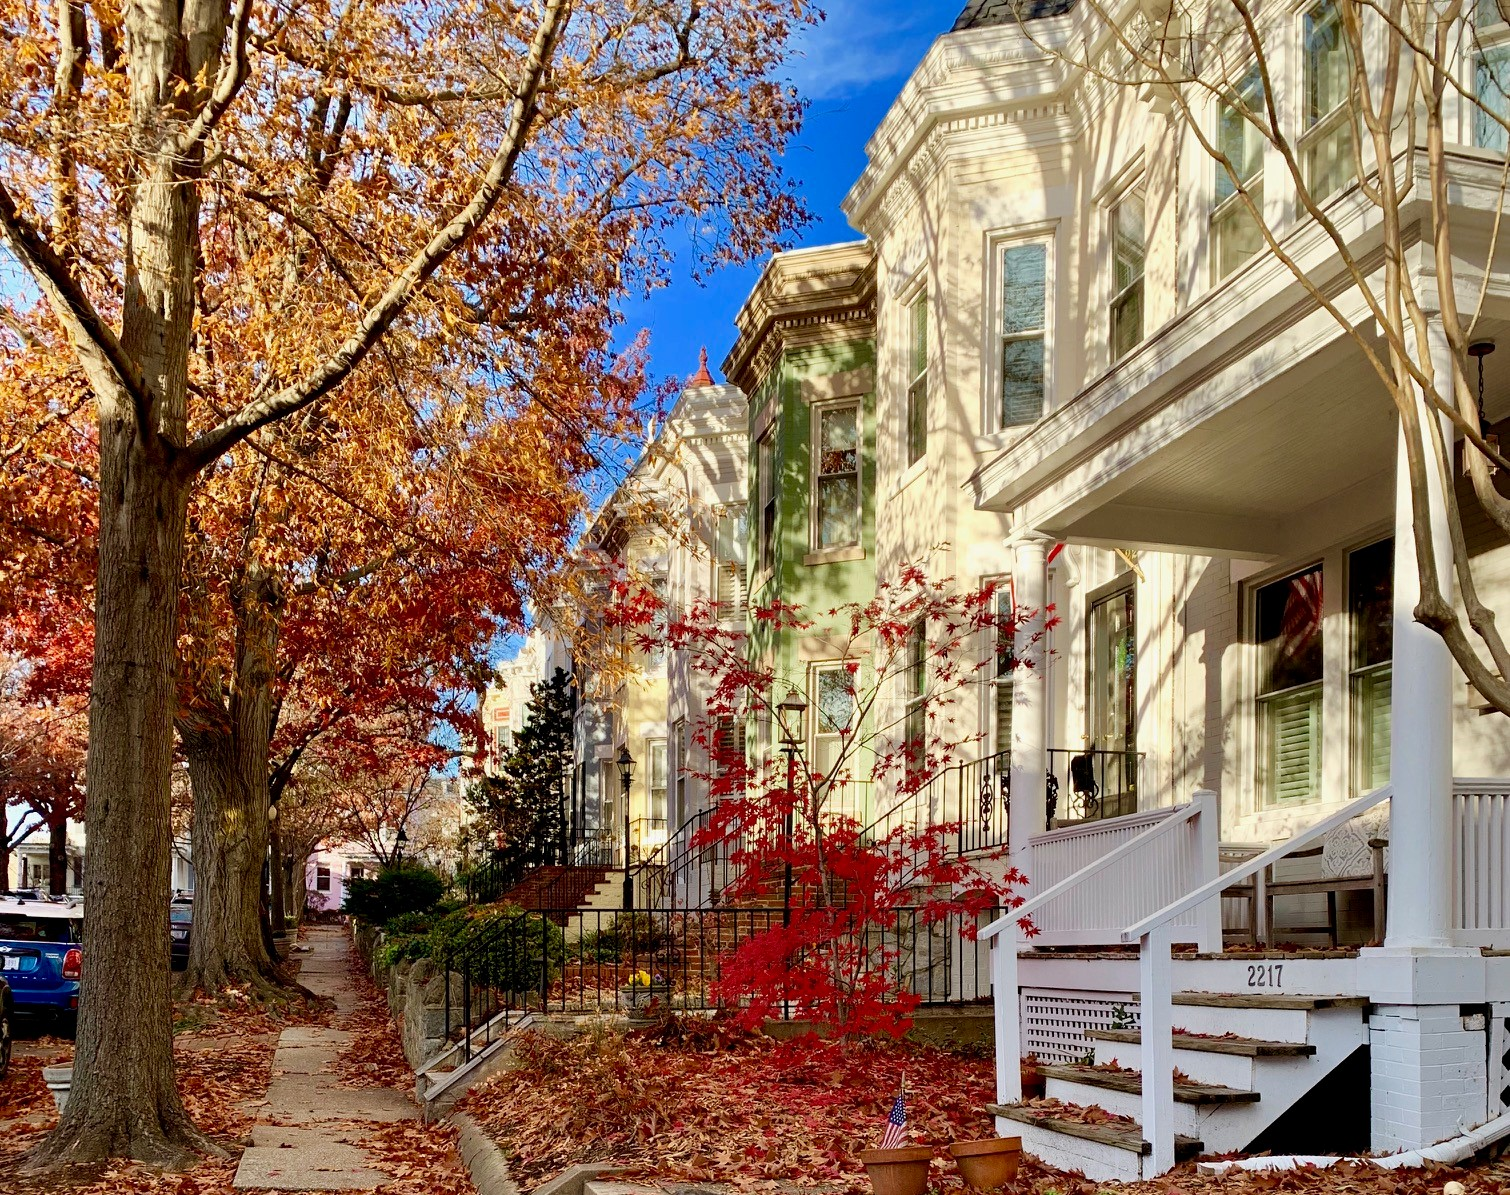 Luxury Row Homes on Hall Pl NW in Glover Park neighborhood, Washington, DC. Art Shmatko Realtor